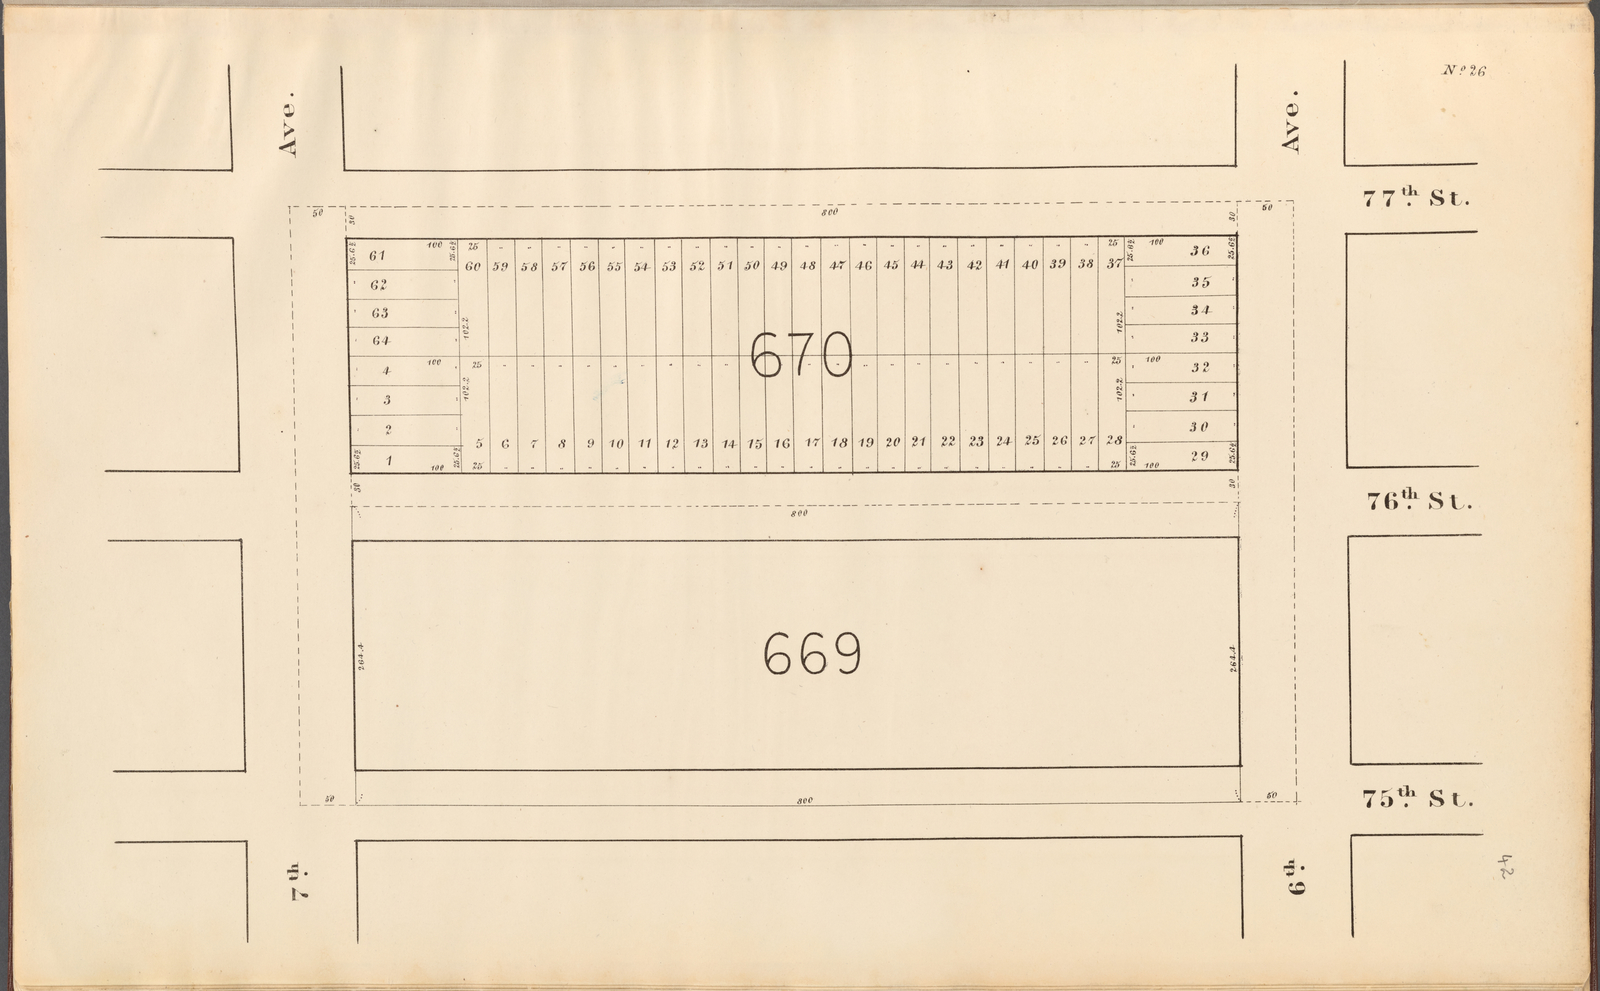 Central Park Planning Map No. 26: Bounded by 77th Street, 6th Avenue, 75th Street and 7th Avenue